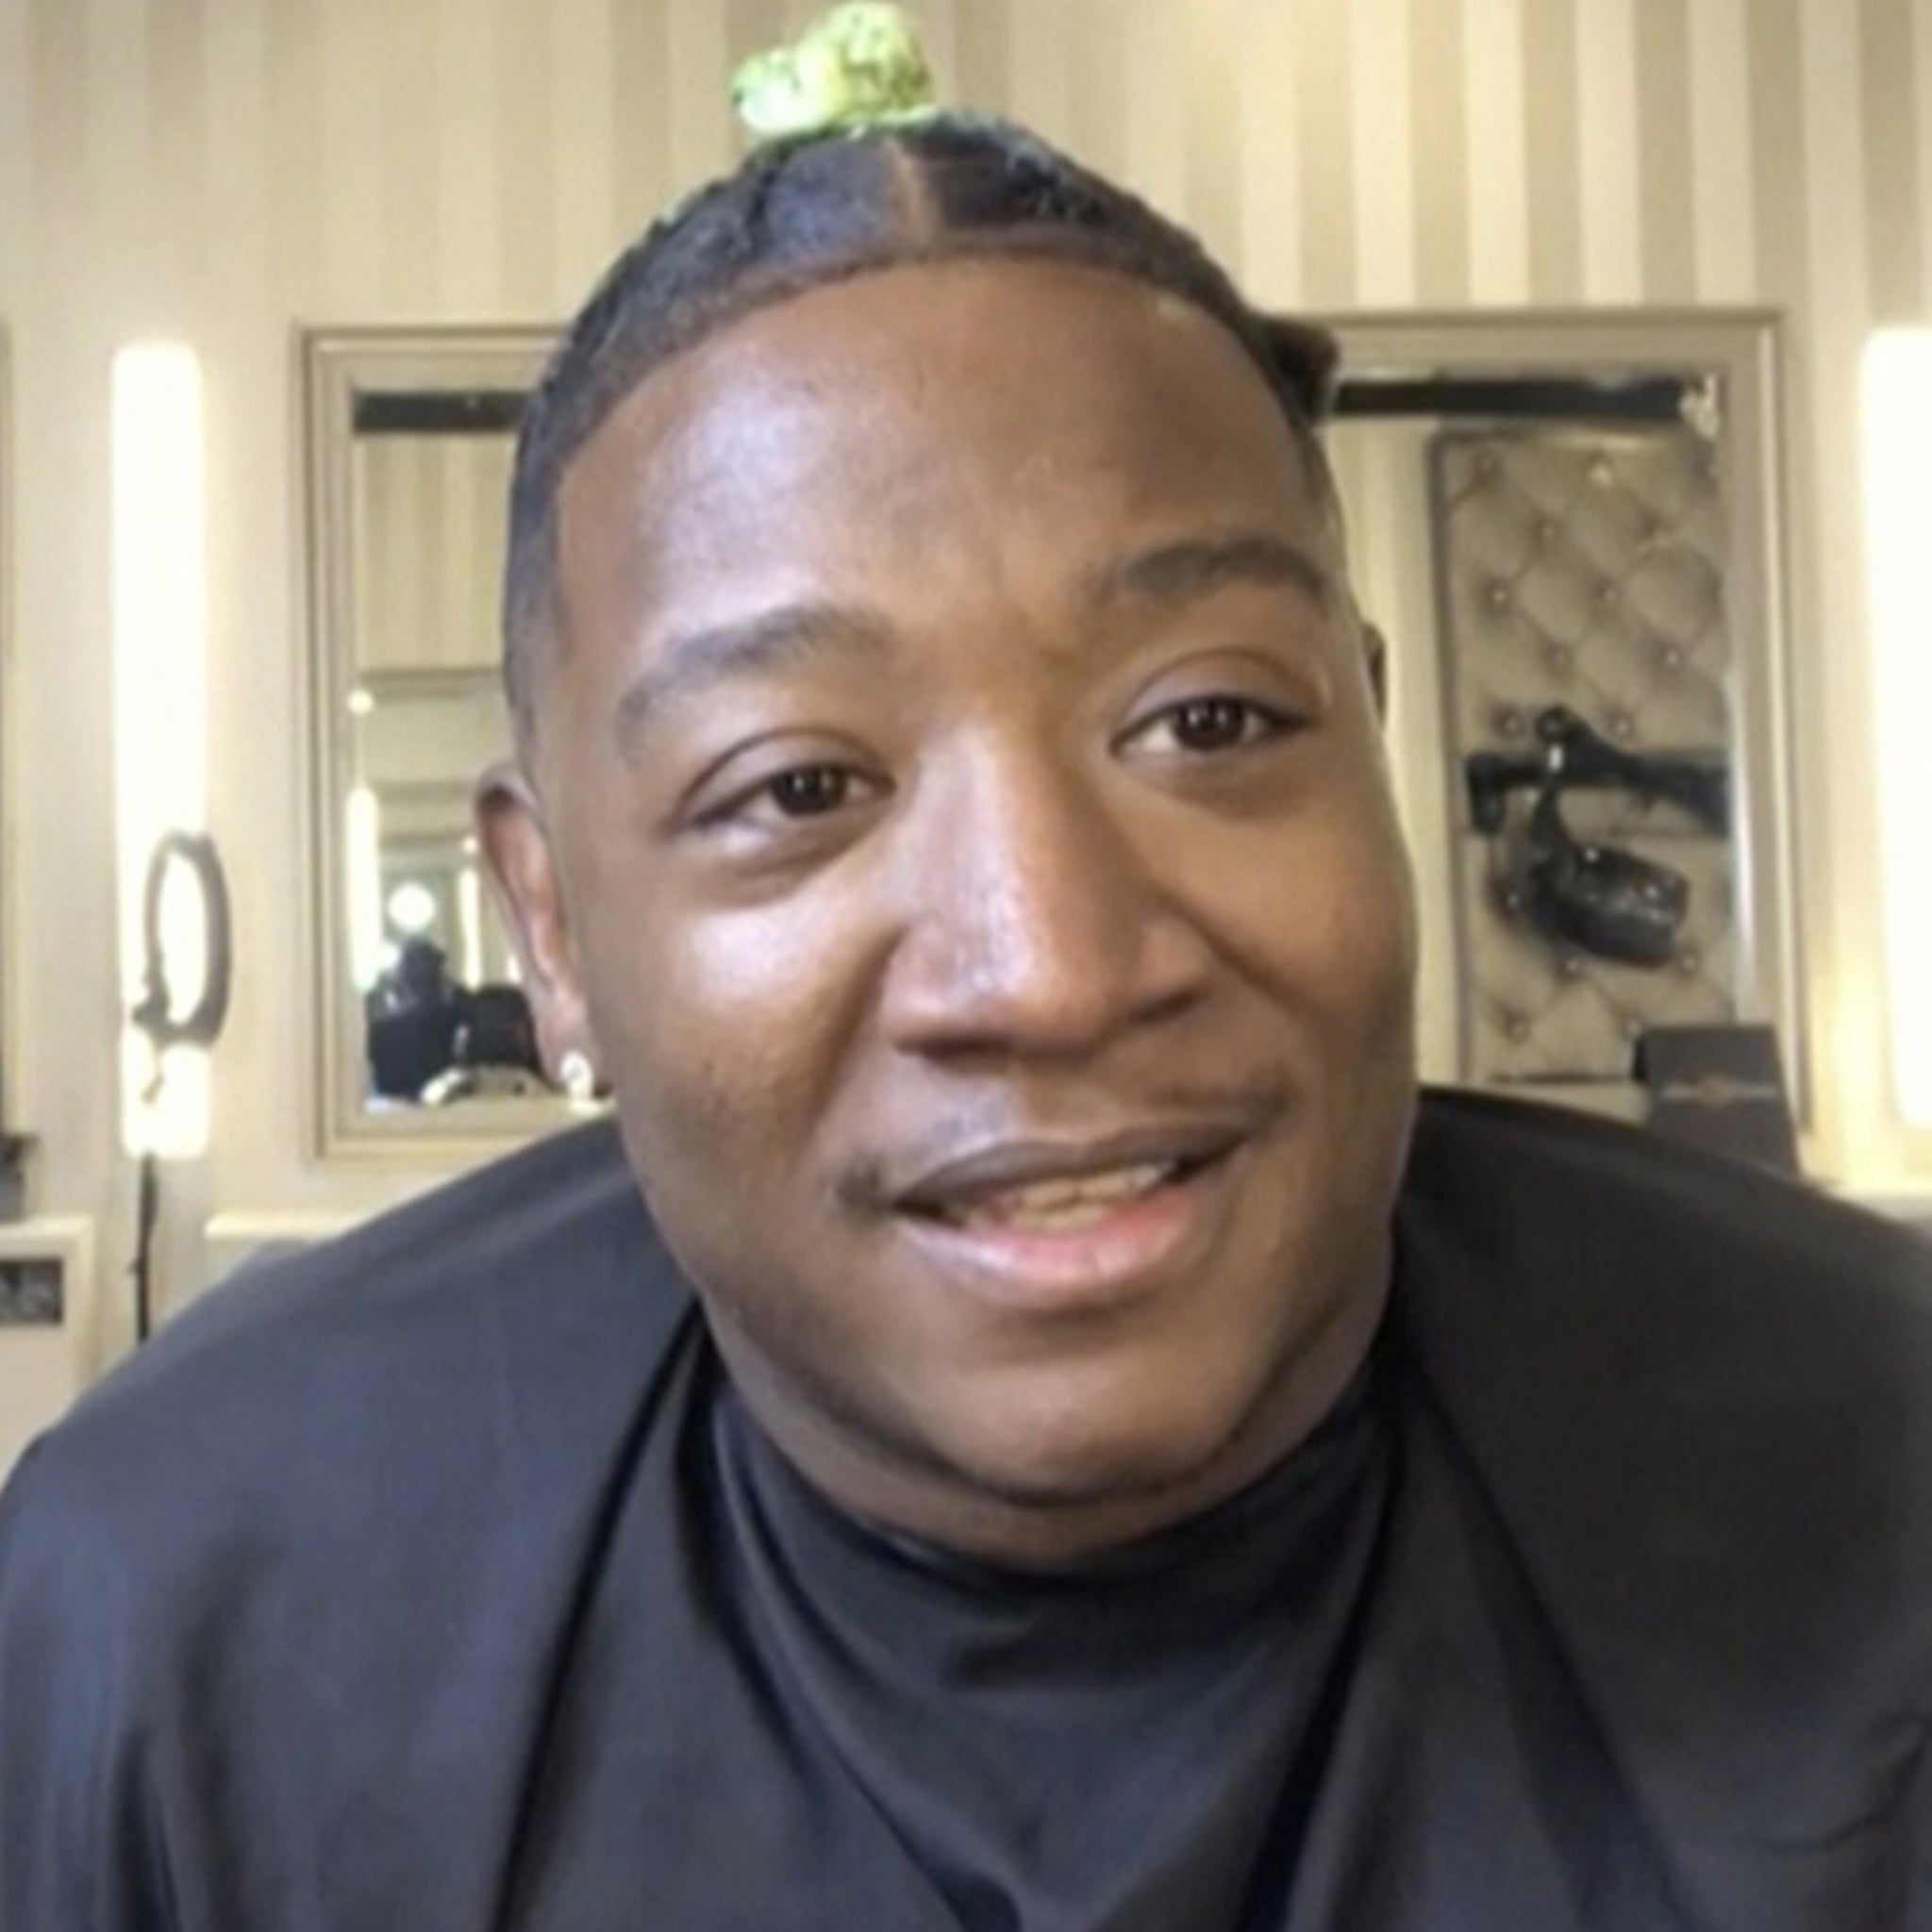 Yung Joc Explains How 3D Haircut of Tupac Went Down